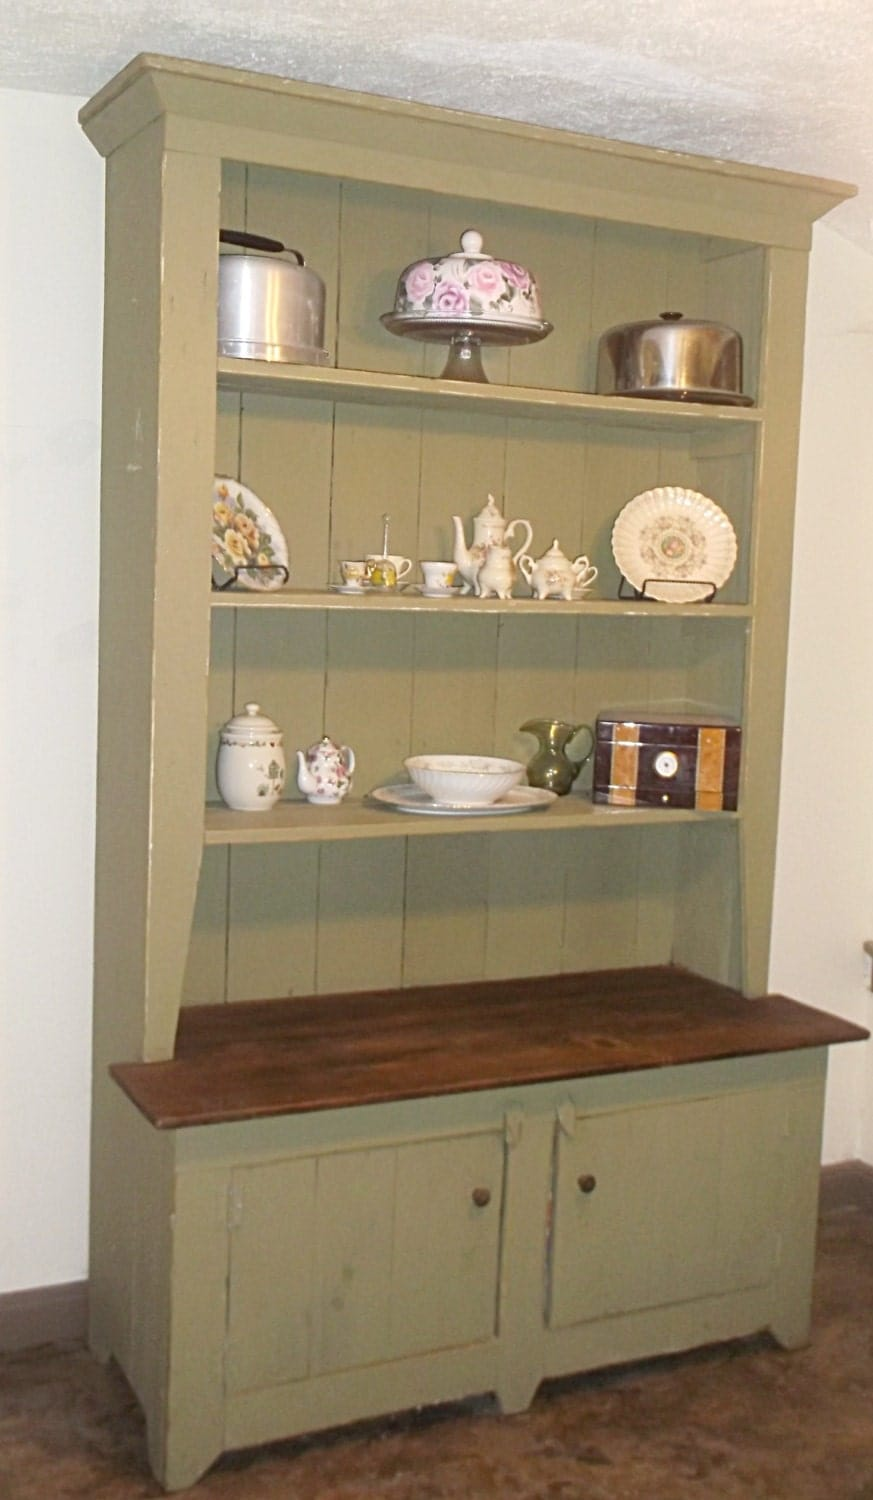 Rustic kitchen hutch painted sideboard cottage chic by sameasnever